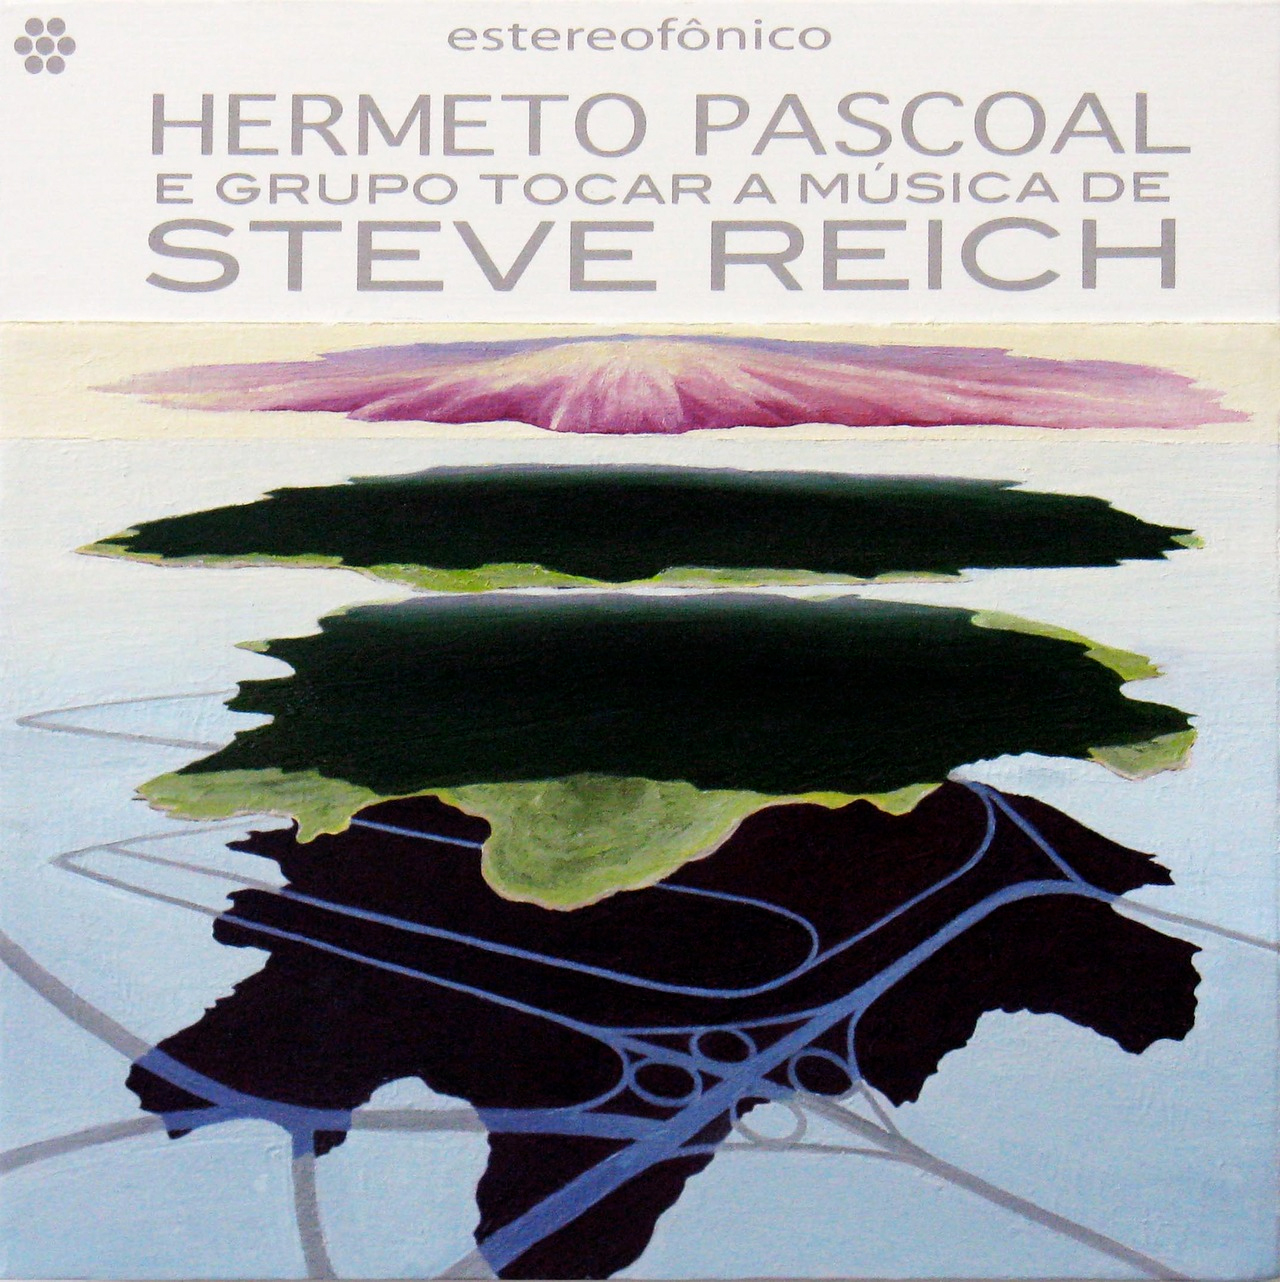 Hermeto Pascoal & Group Play the Music of Steve Reich-1980